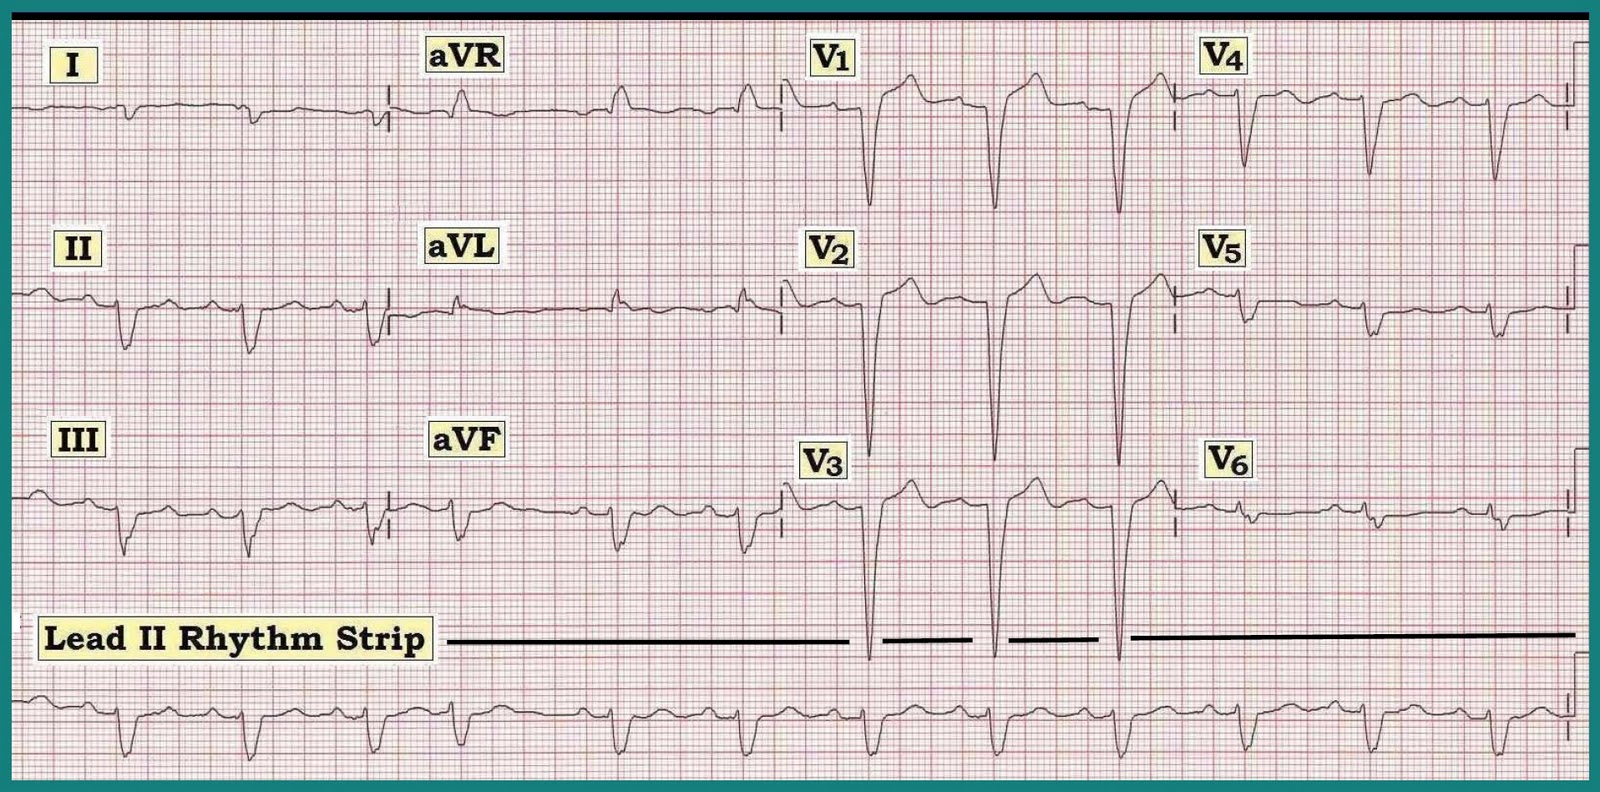 Standard Ekg Diagram Craftsman Air Compressor Wiring Posterior Leads Ecg Placement Gt Homemade Projects